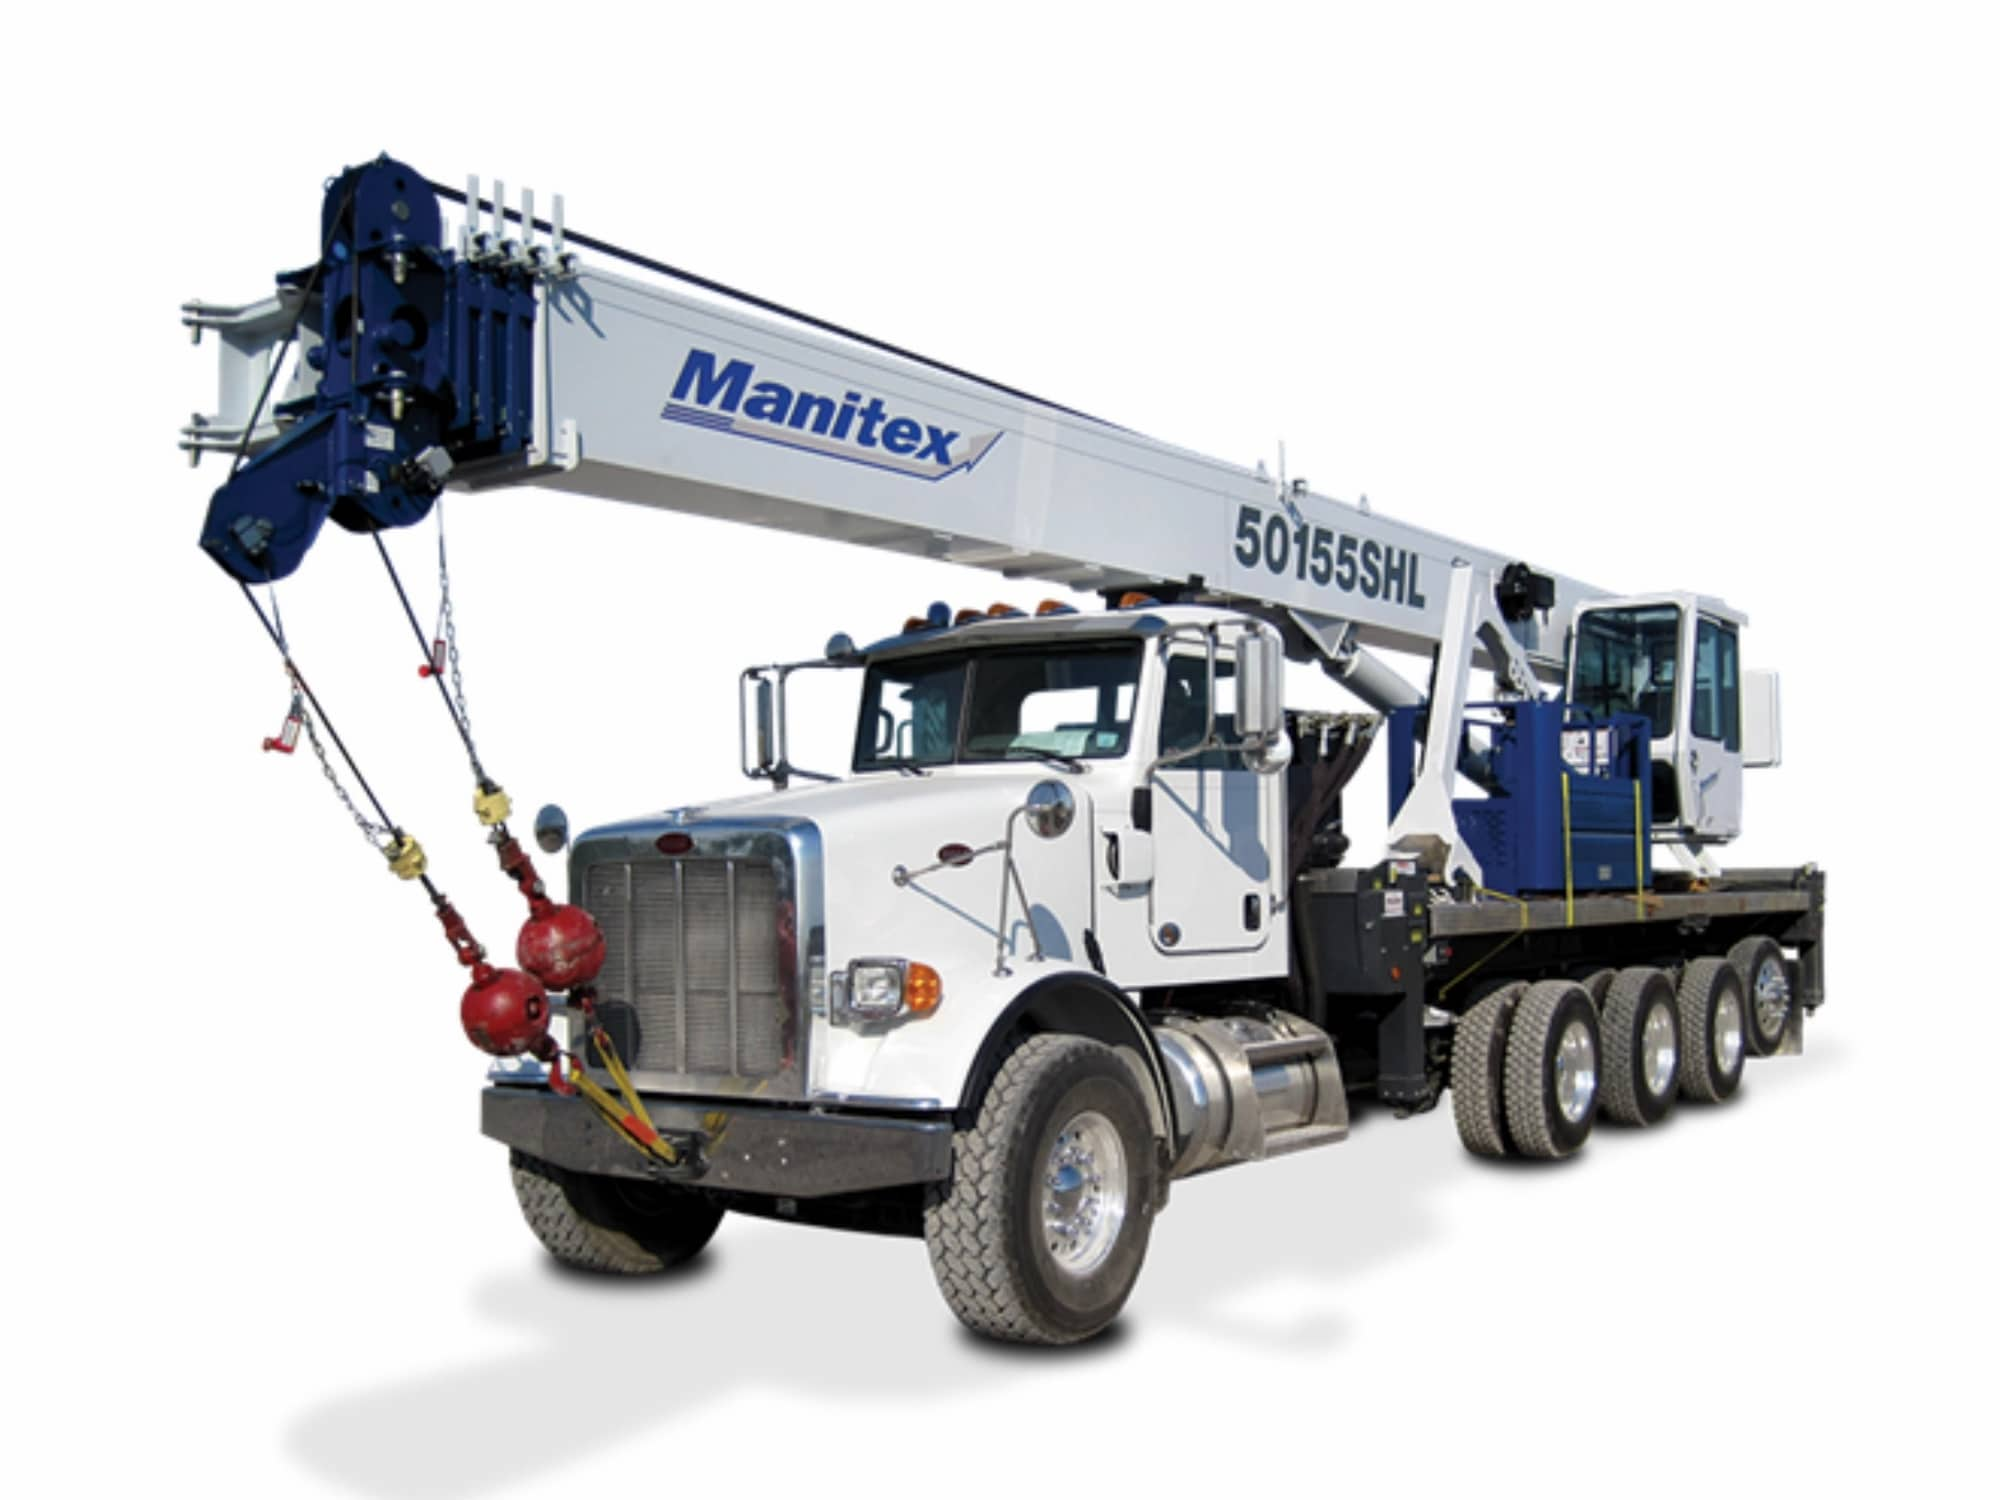 NEW 2019 MANITEX 50155SHL #NEW155 Image